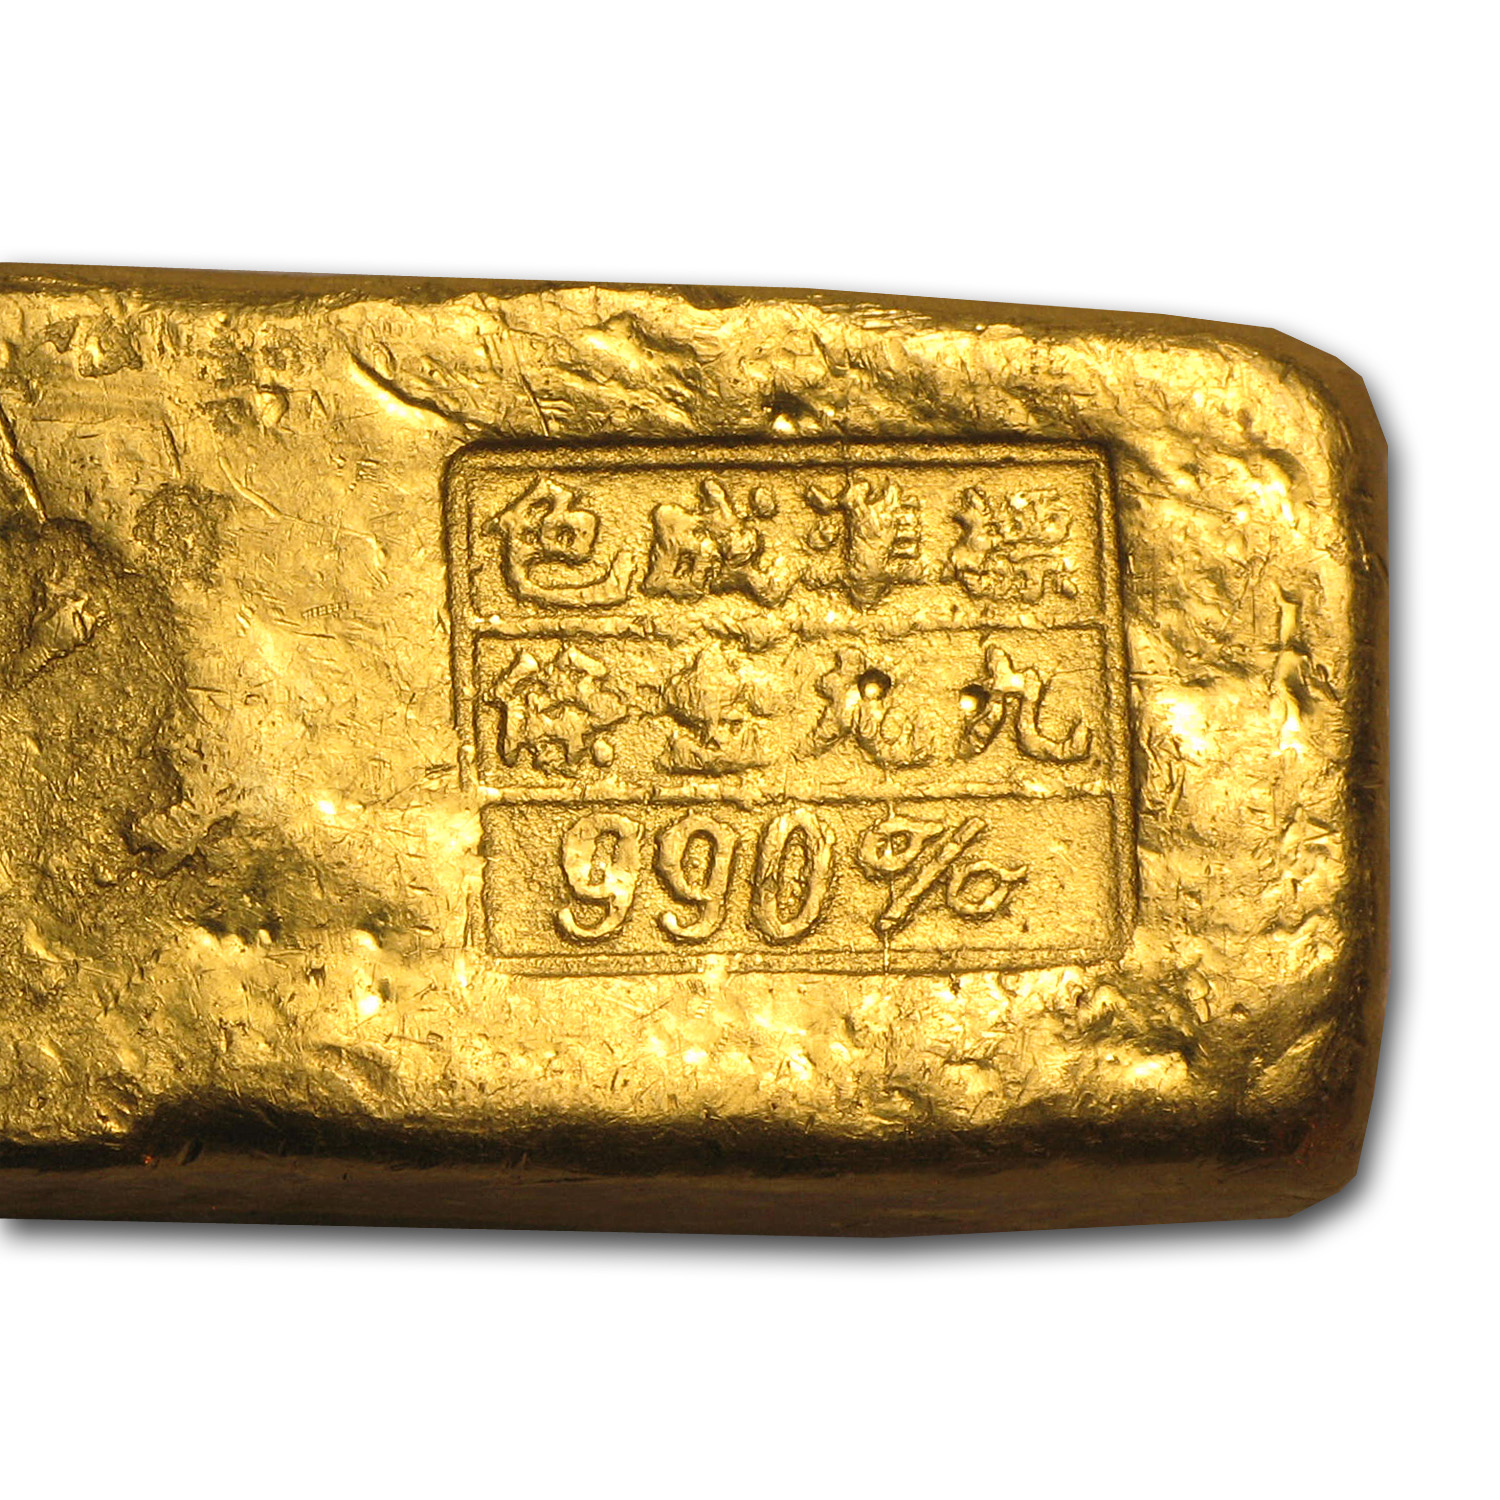 5 Tael Gold Bars - Chinese Biscuit (6.01 oz., .990 Fine)